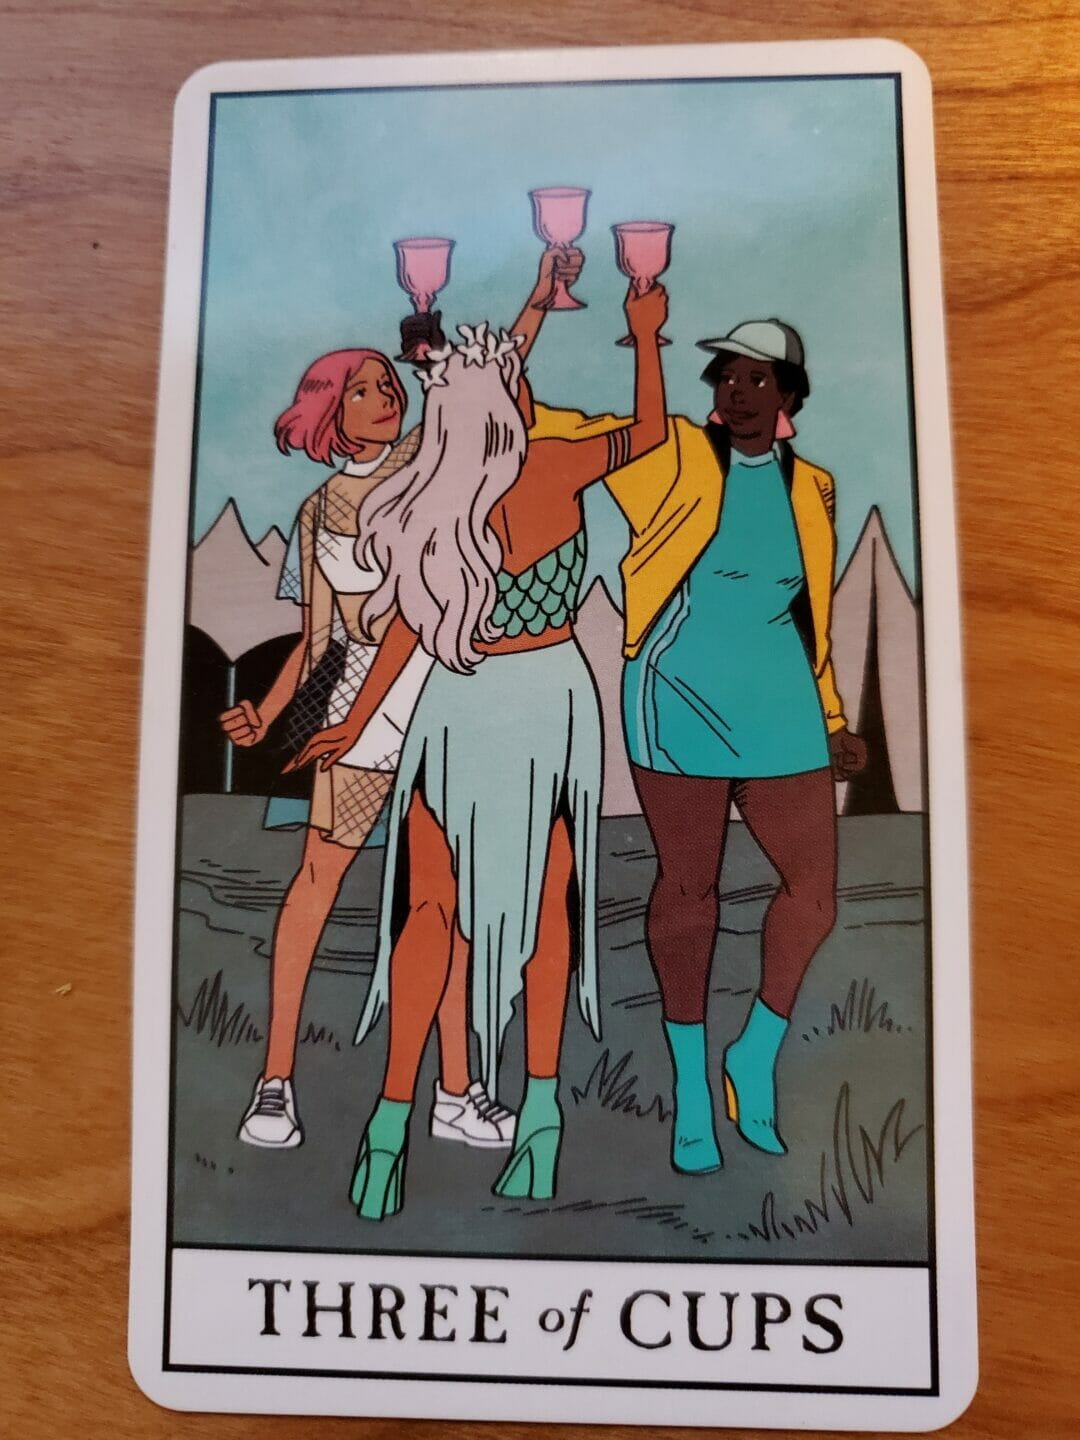 Three of Cups: The Covid Quarantine Card?